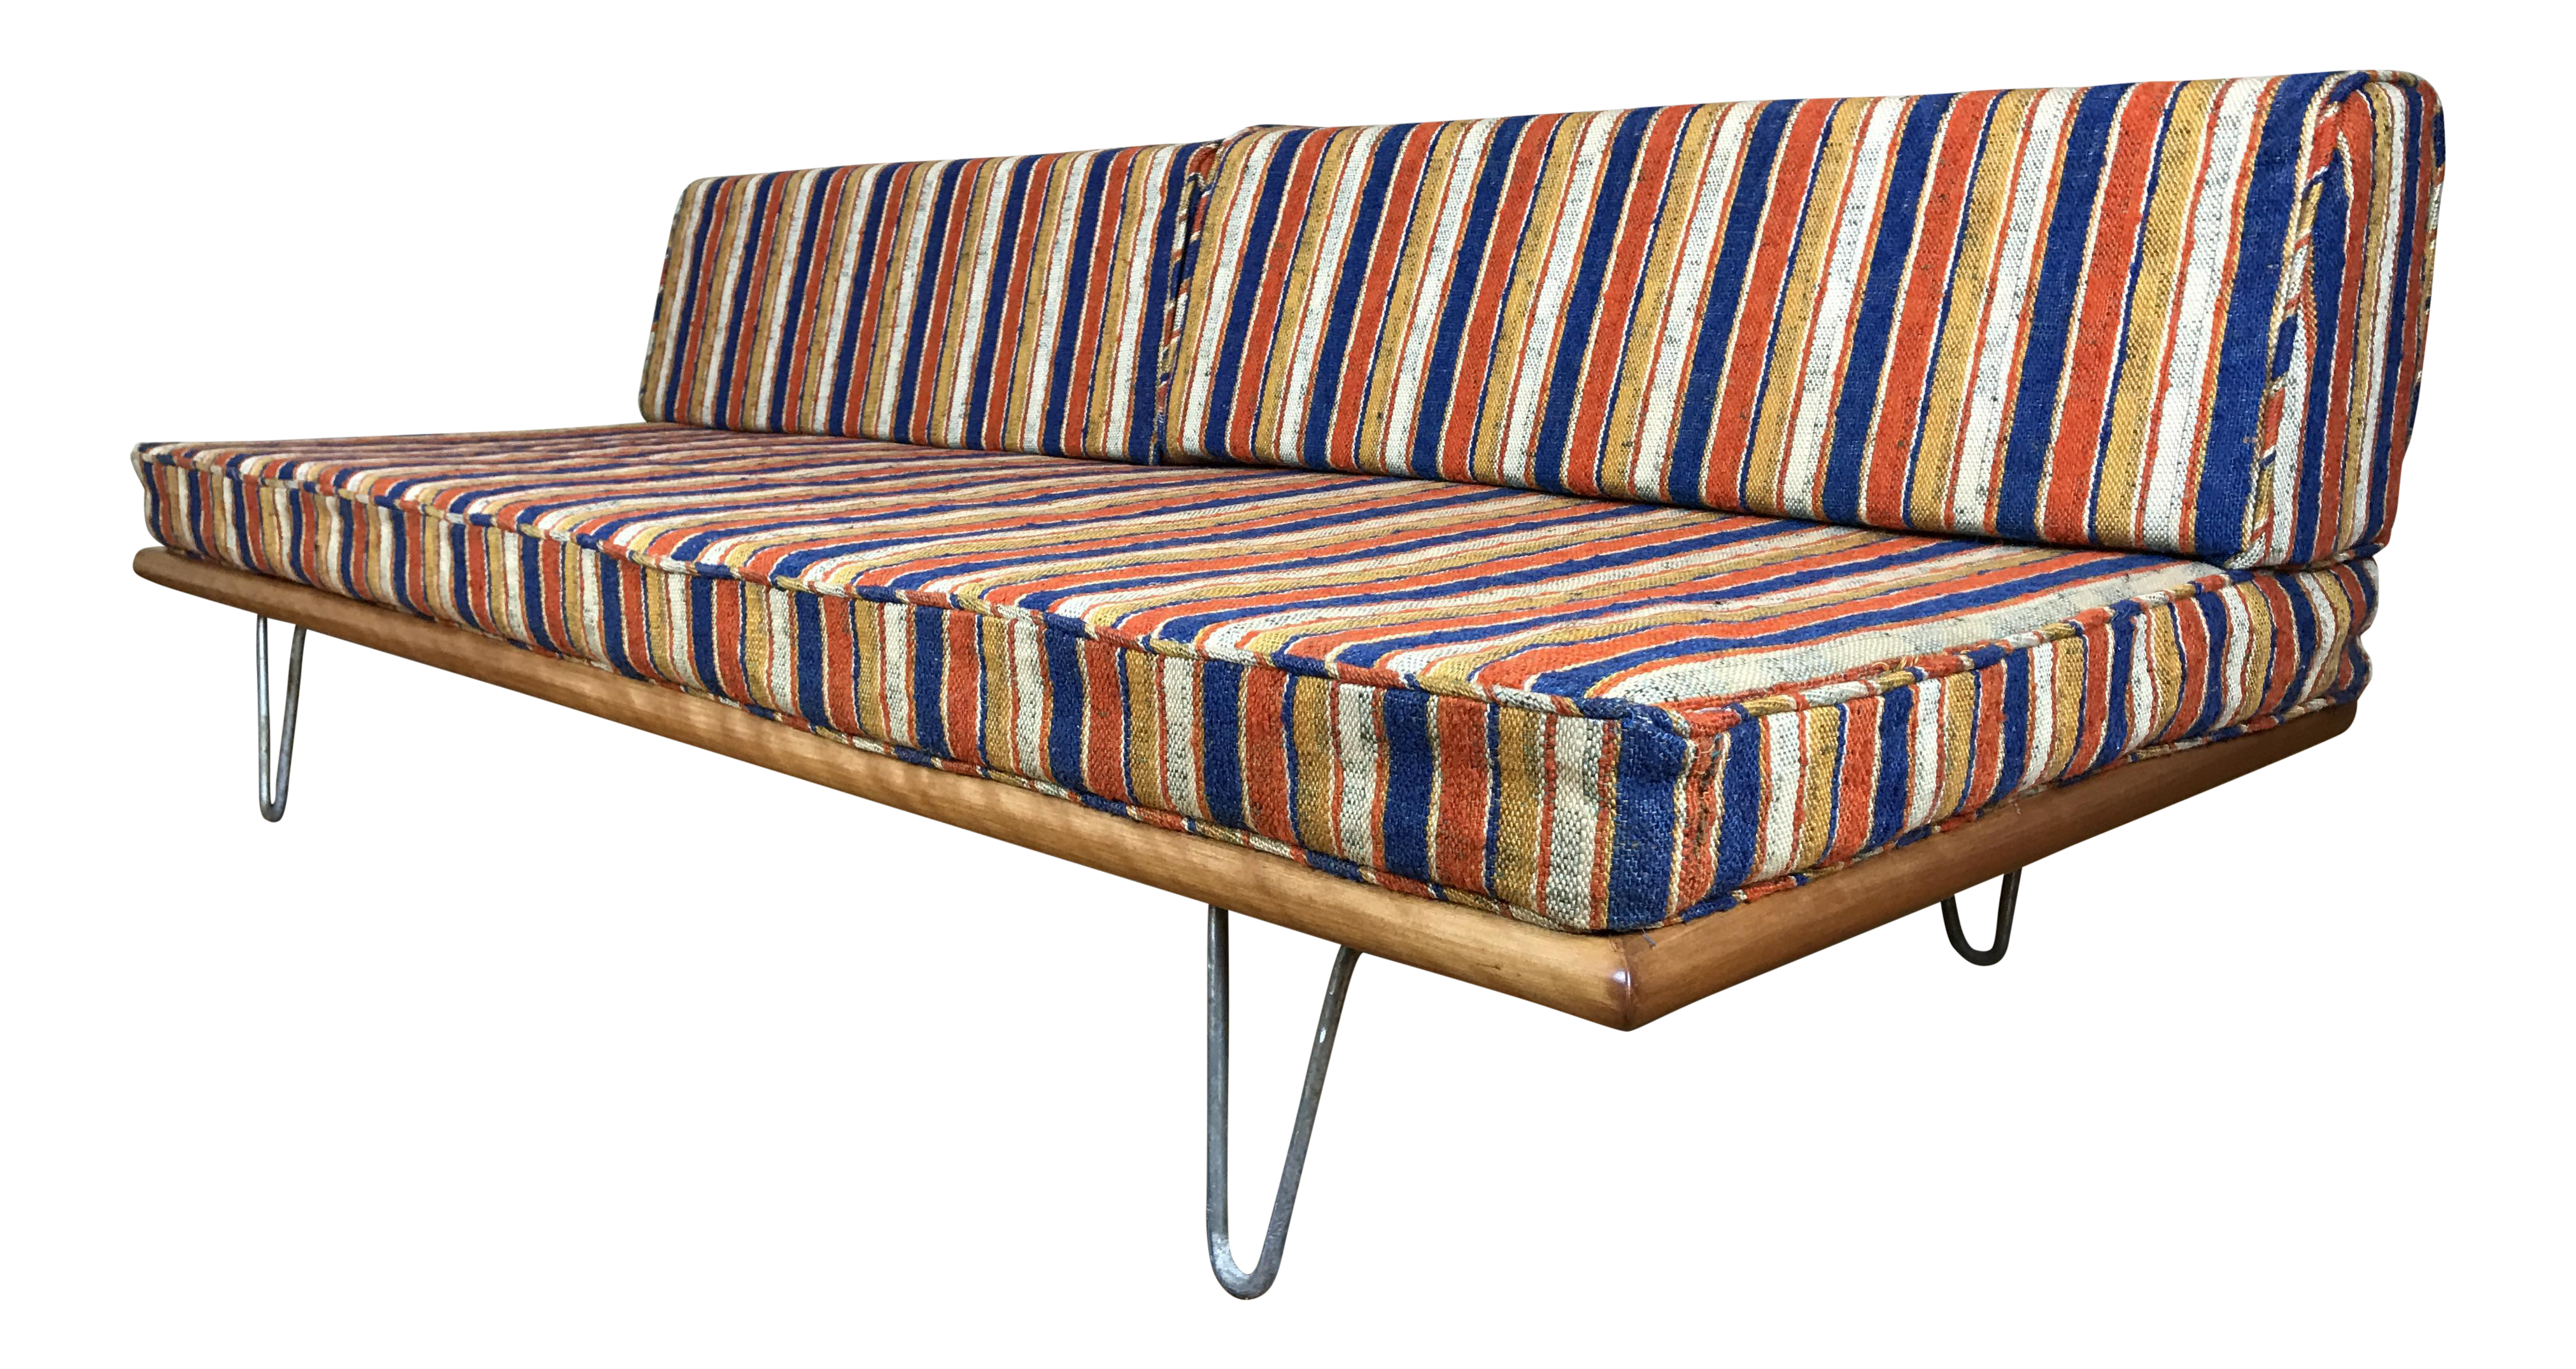 George Nelson For Herman Miller Sofa Daybed Original Alexander Girard  Upholstery   Image 1 Of 11